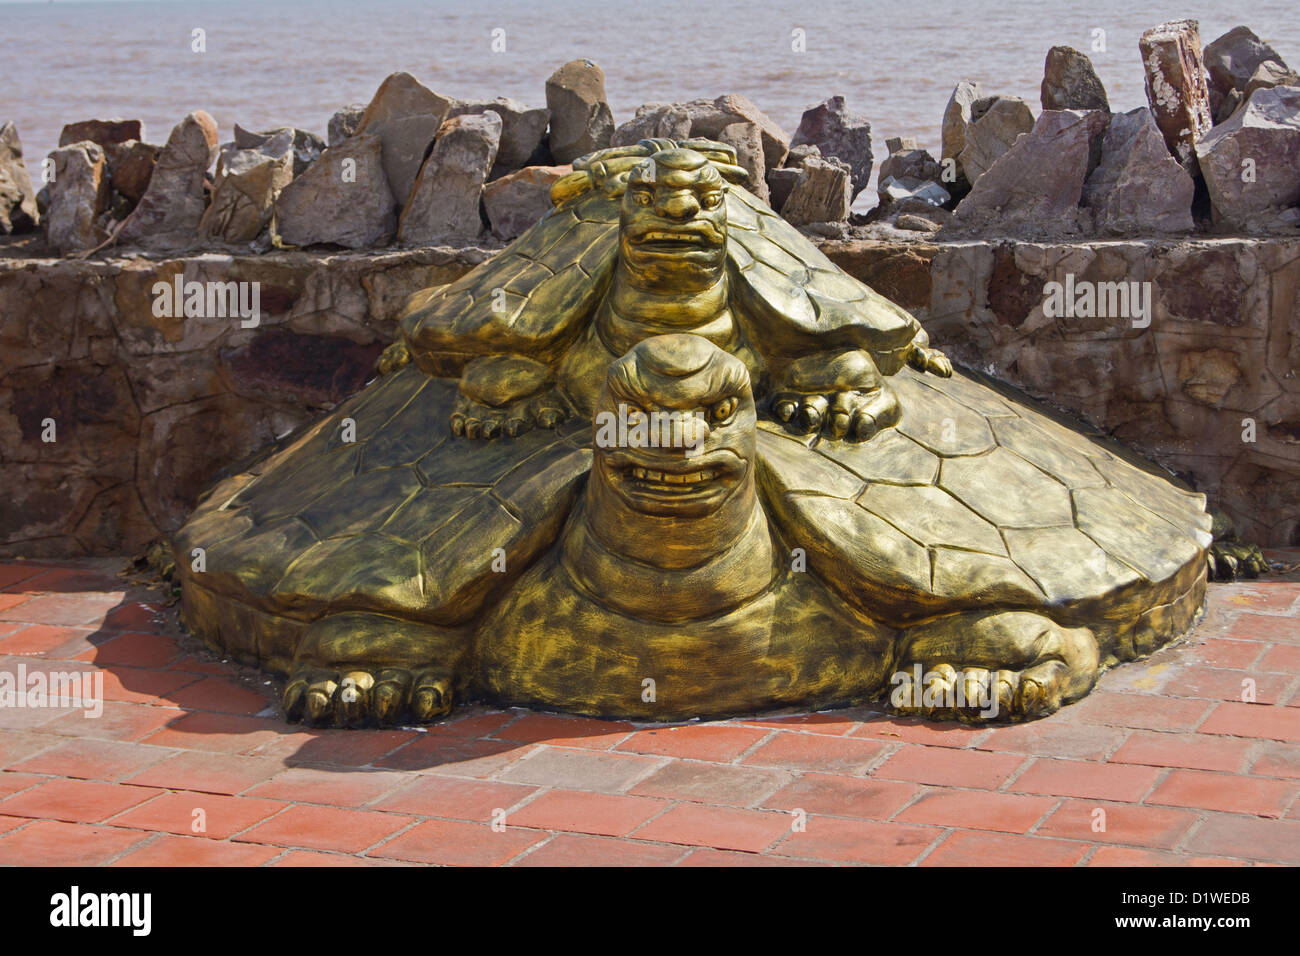 Turtle Statue Stock Photos & Turtle Statue Stock Images - Alamy